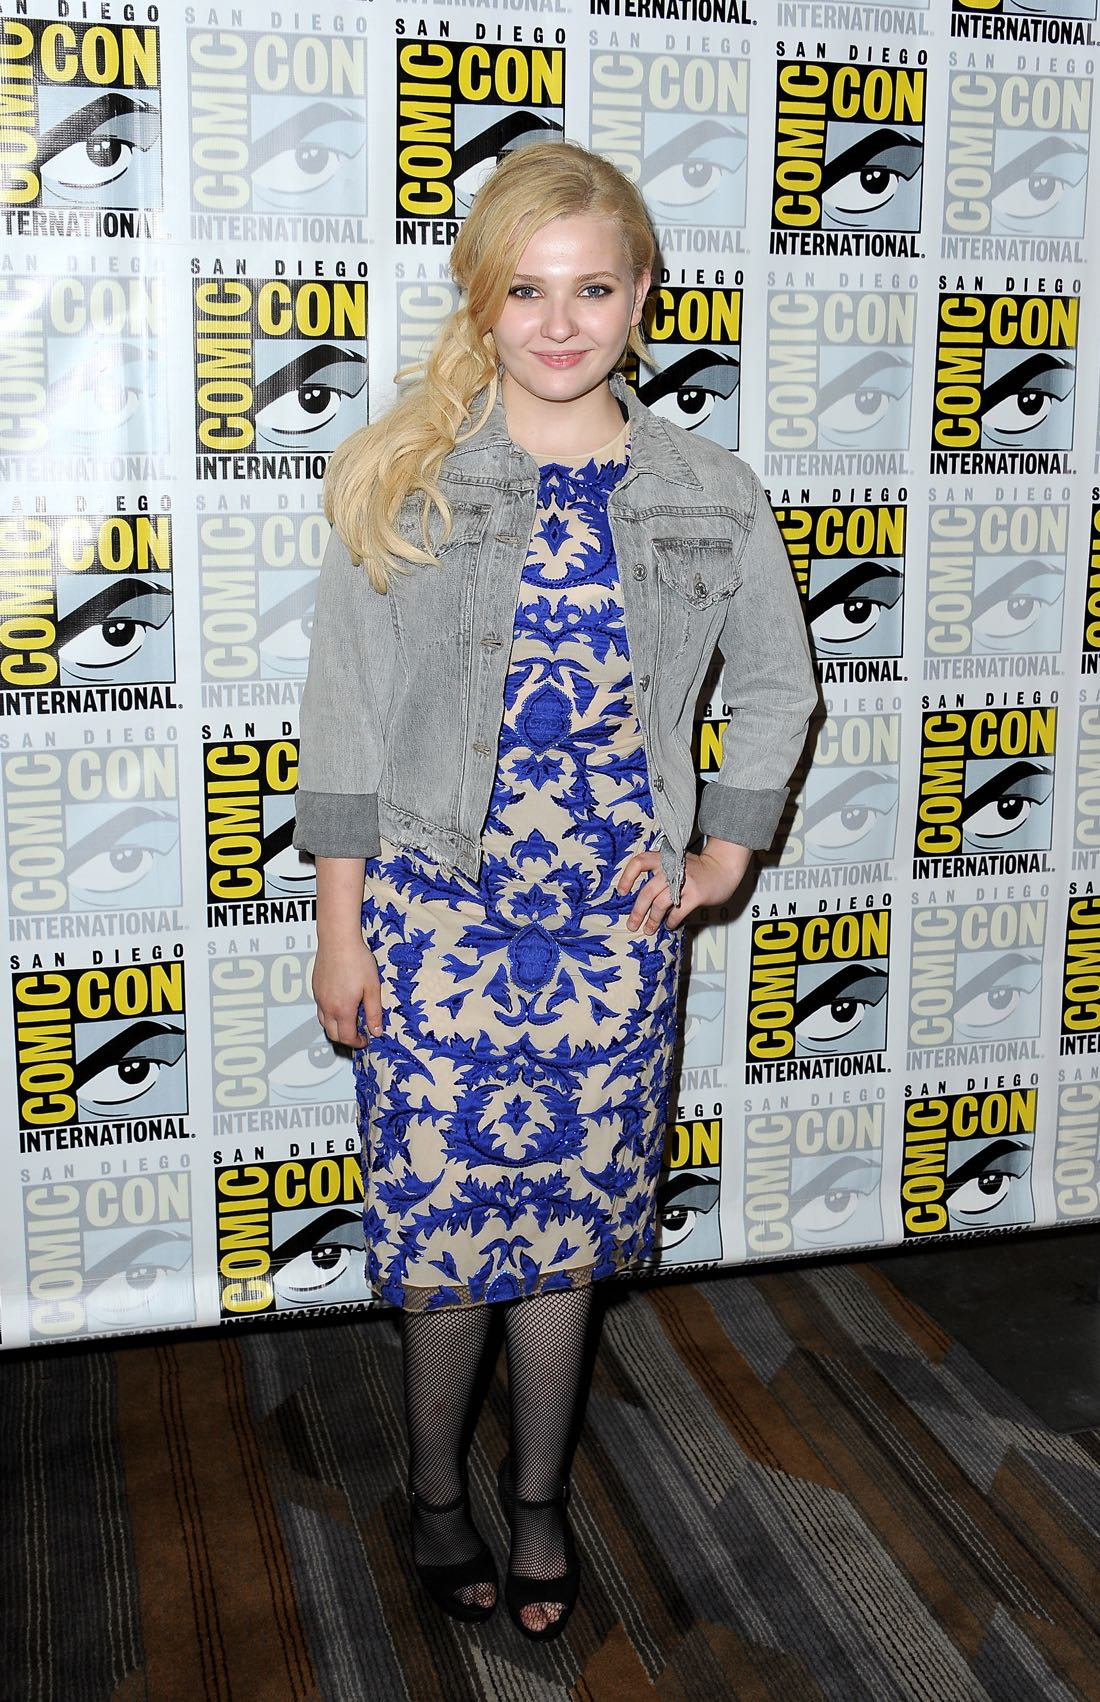 FOX FANFARE AT SAN DIEGO COMIC-CON © 2016: SCREAM QUEENS cast member Abigail Breslin during the SCREAM QUEENS press room on Friday, July 22 at the FOX FANFARE AT SAN DIEGO COMIC-CON © 2016. CR: Scott Krikland/FX © 2016 FOX BROADCASTING